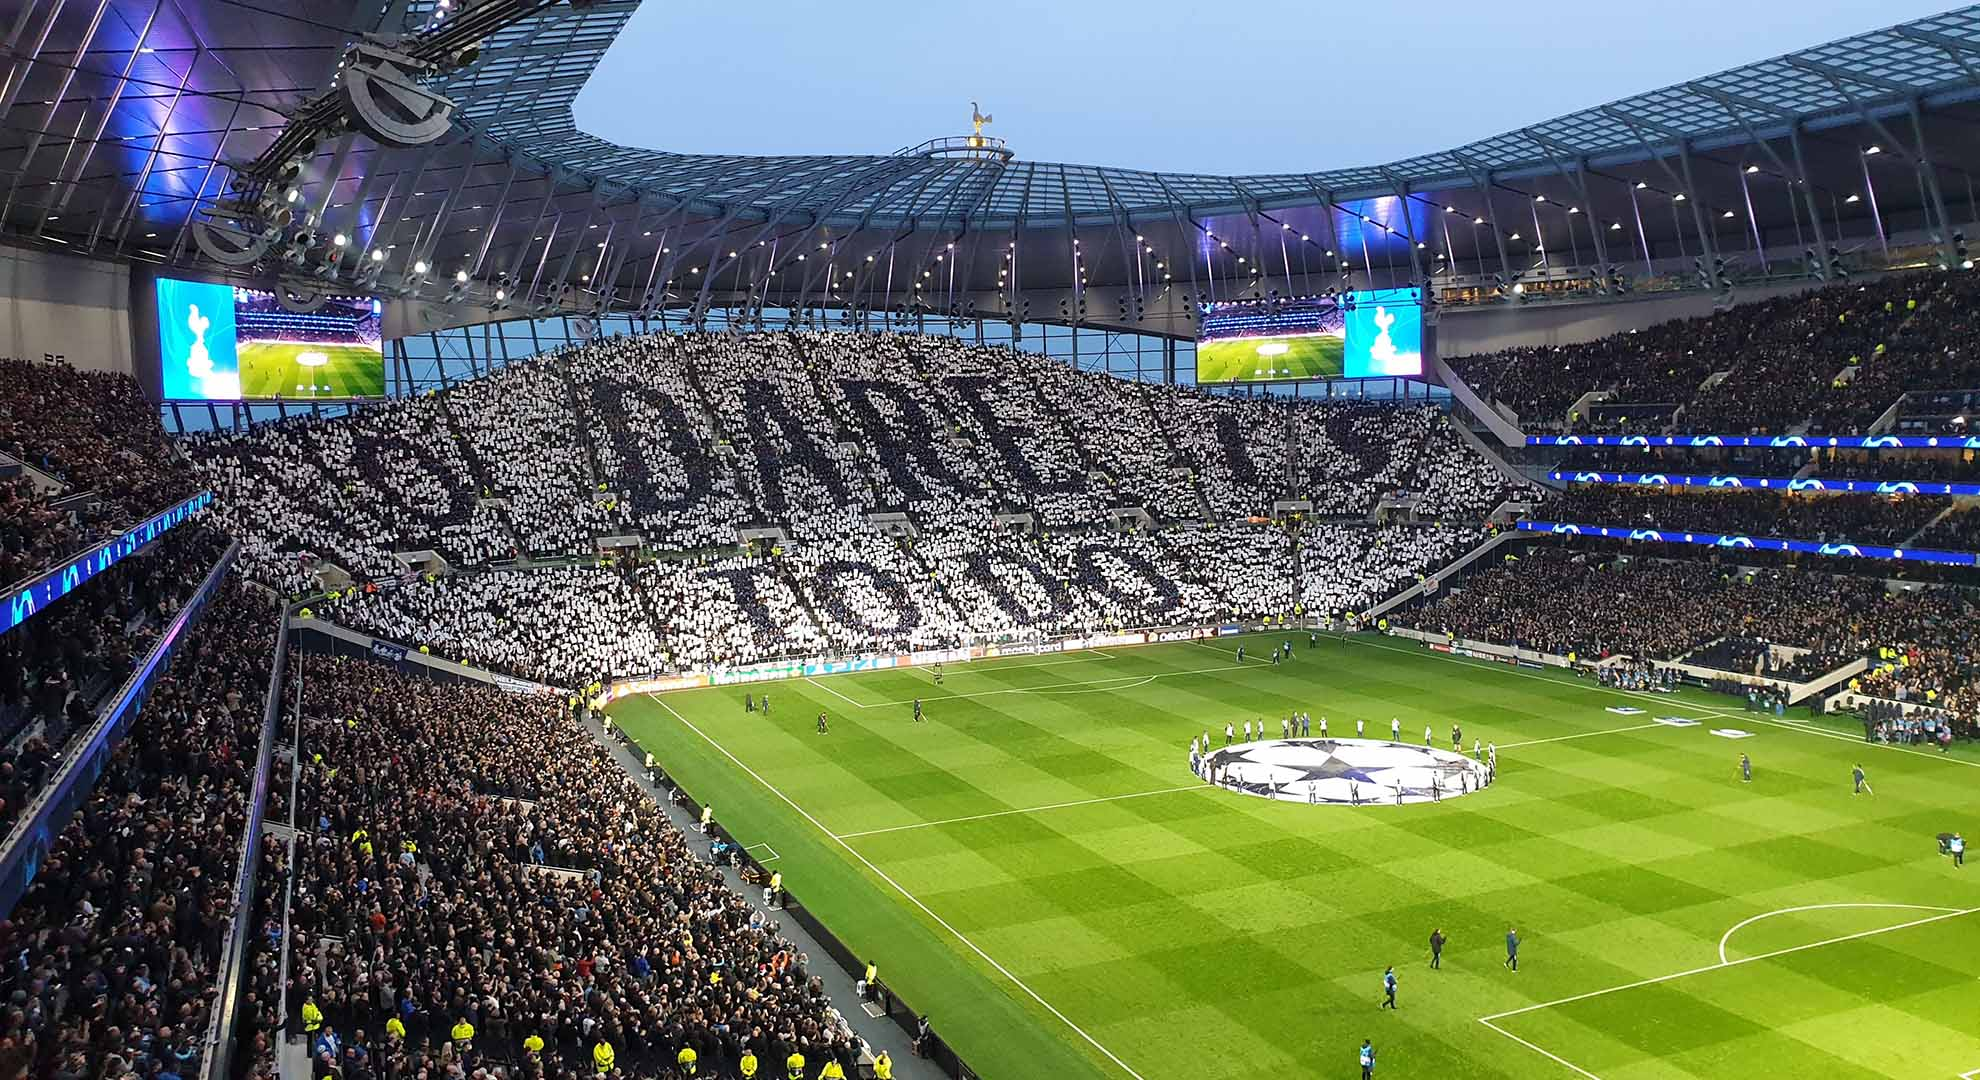 The field of play of the Tottenham Hotspur Football Club in London